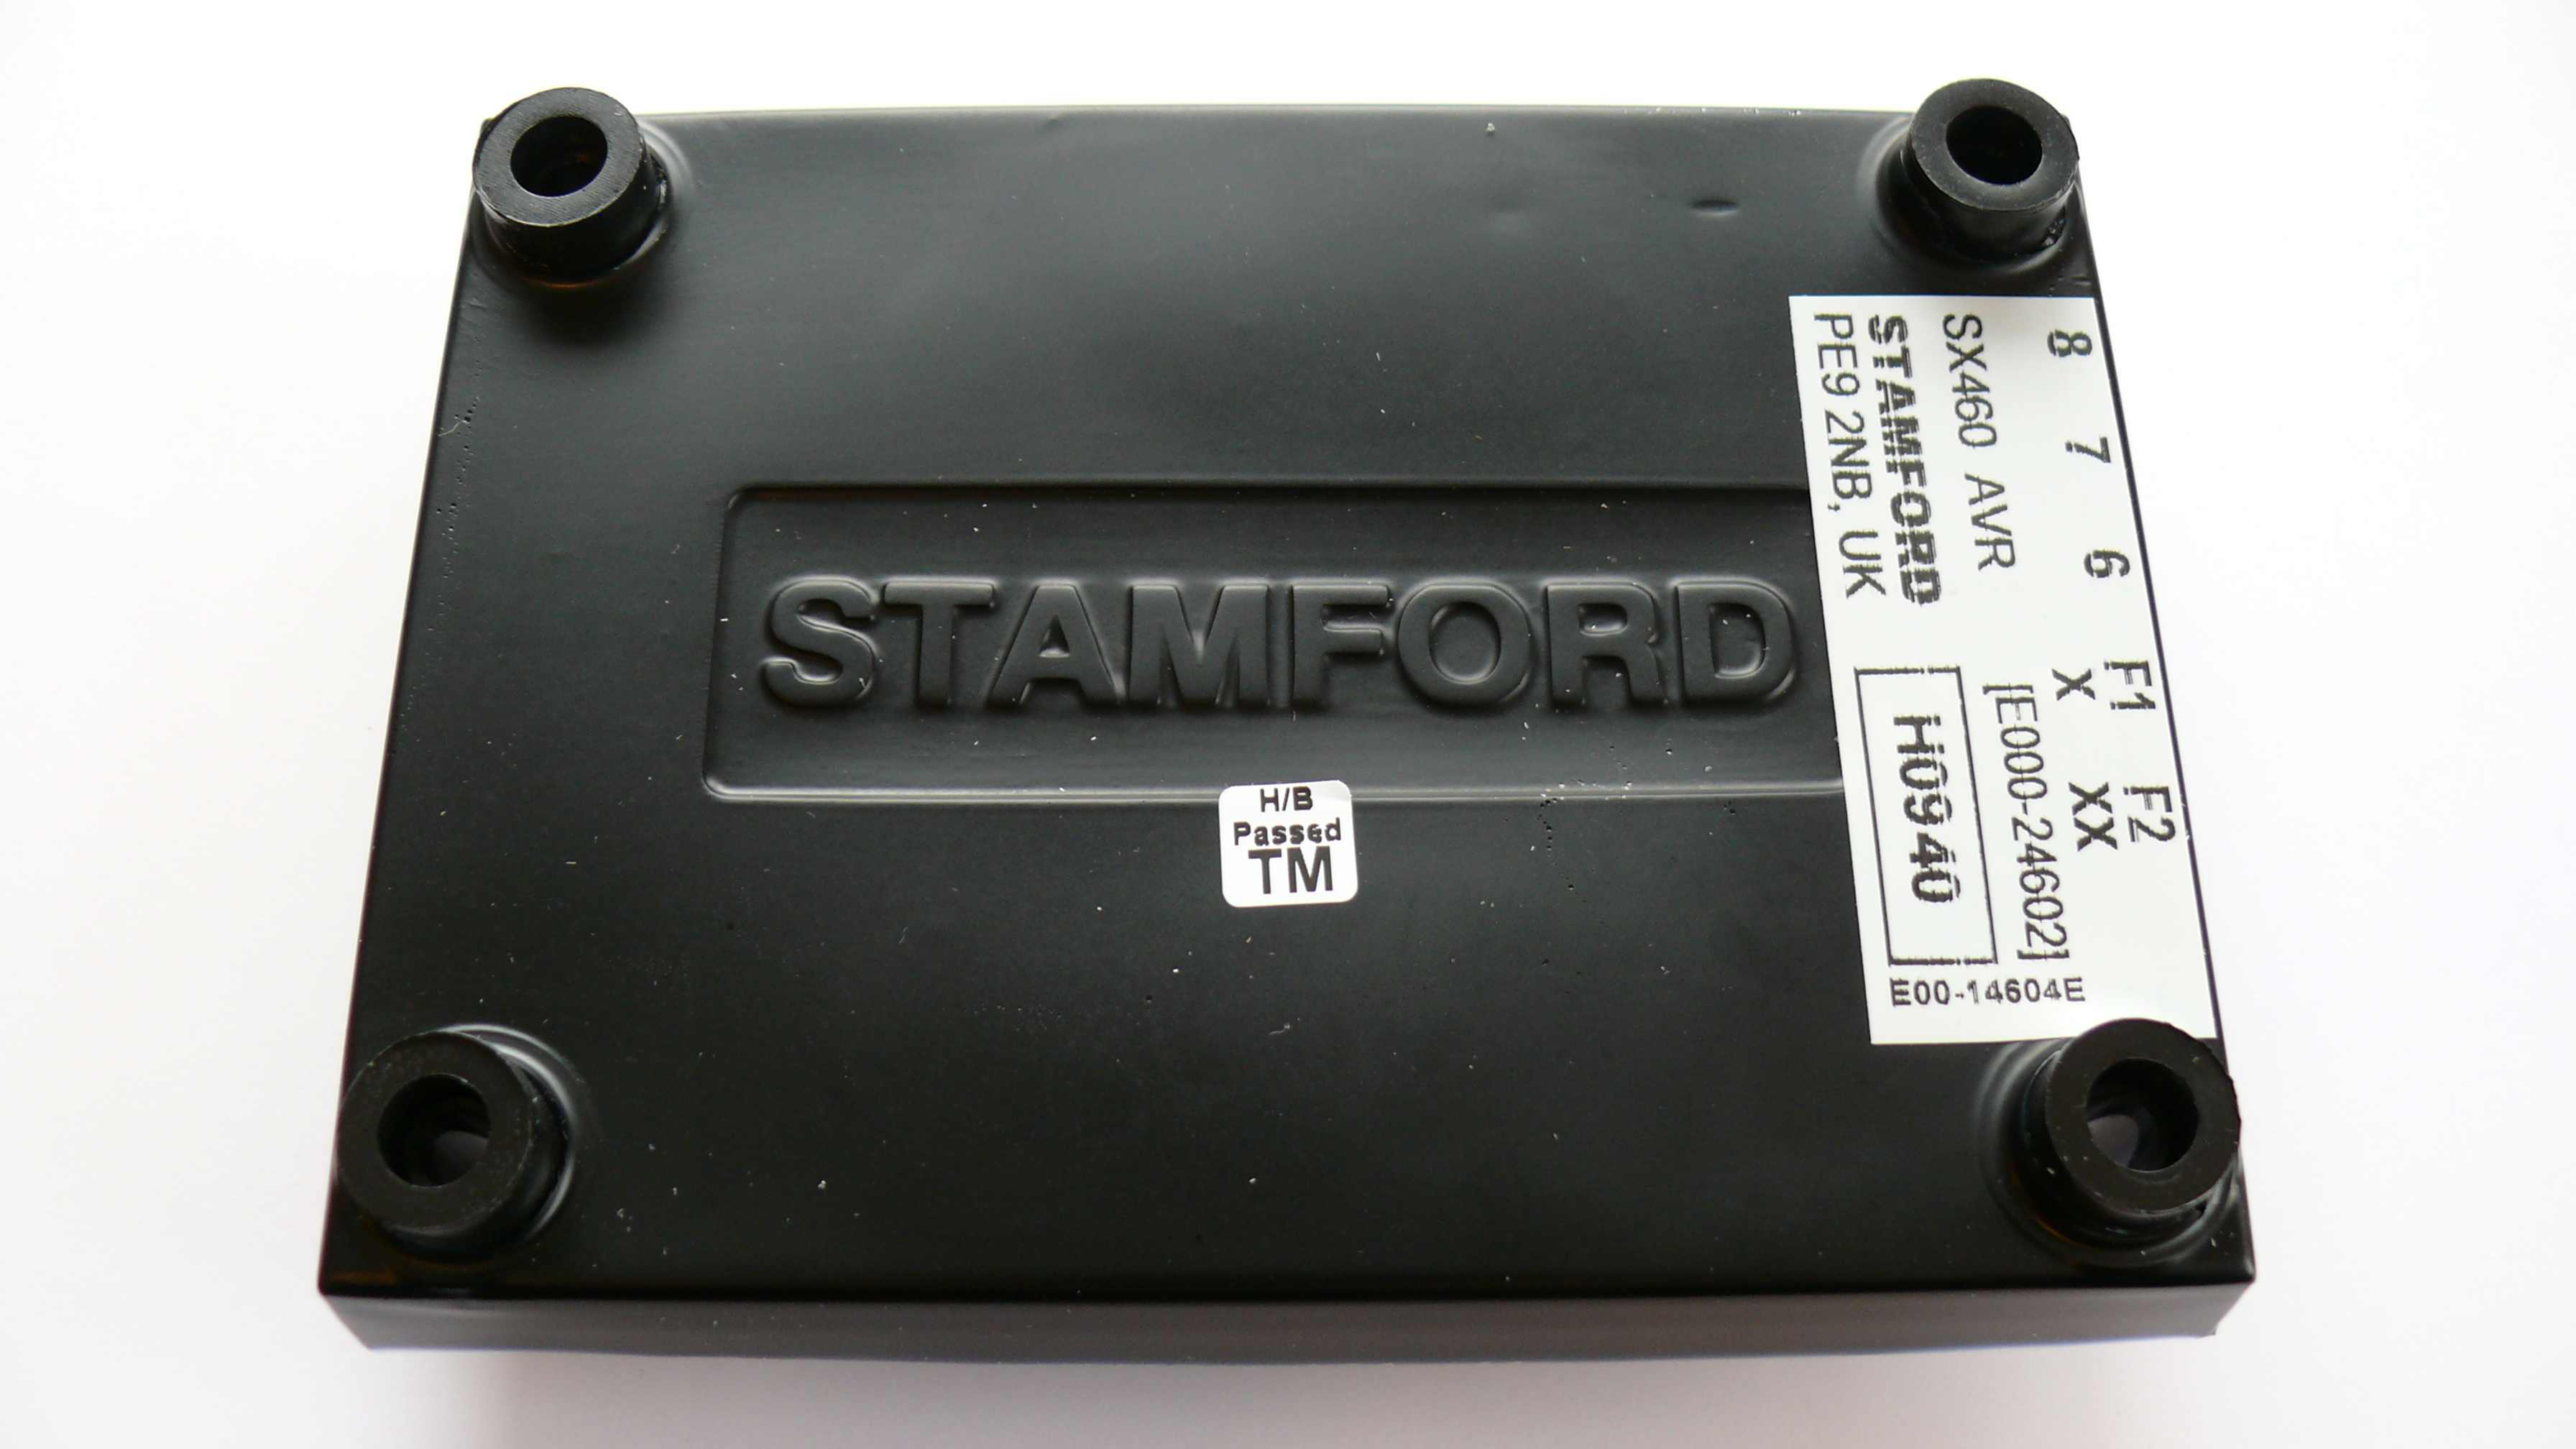 wellandpower_stamford_sx460_back.JPG